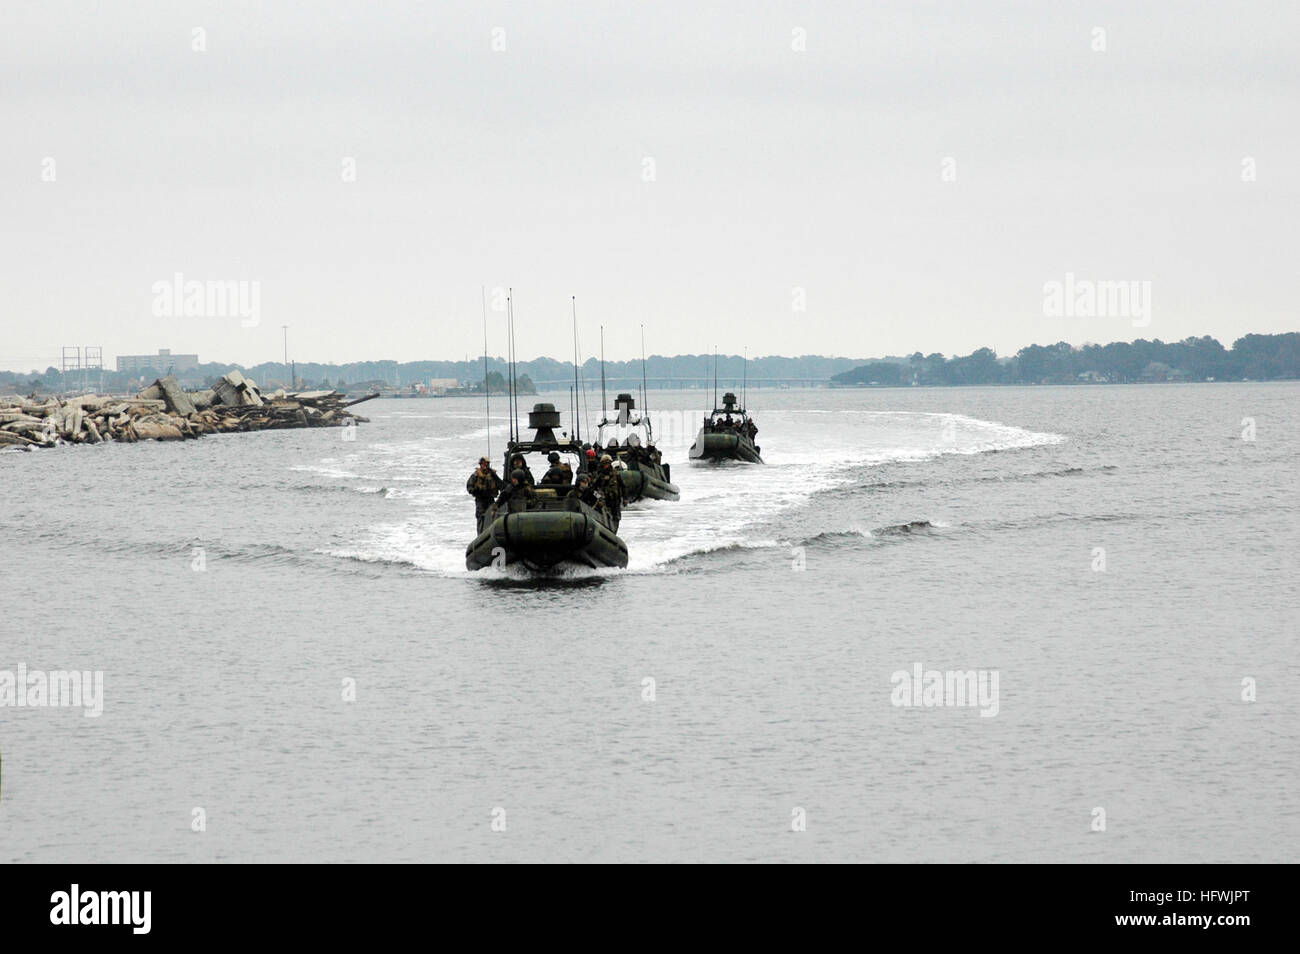 081217-N-3346C-129 NORFOLK, Va. (Dec. 17, 2008) Sailors assigned to Riverine Squadron (RIVRON) 2 conduct waterborne - Stock Image